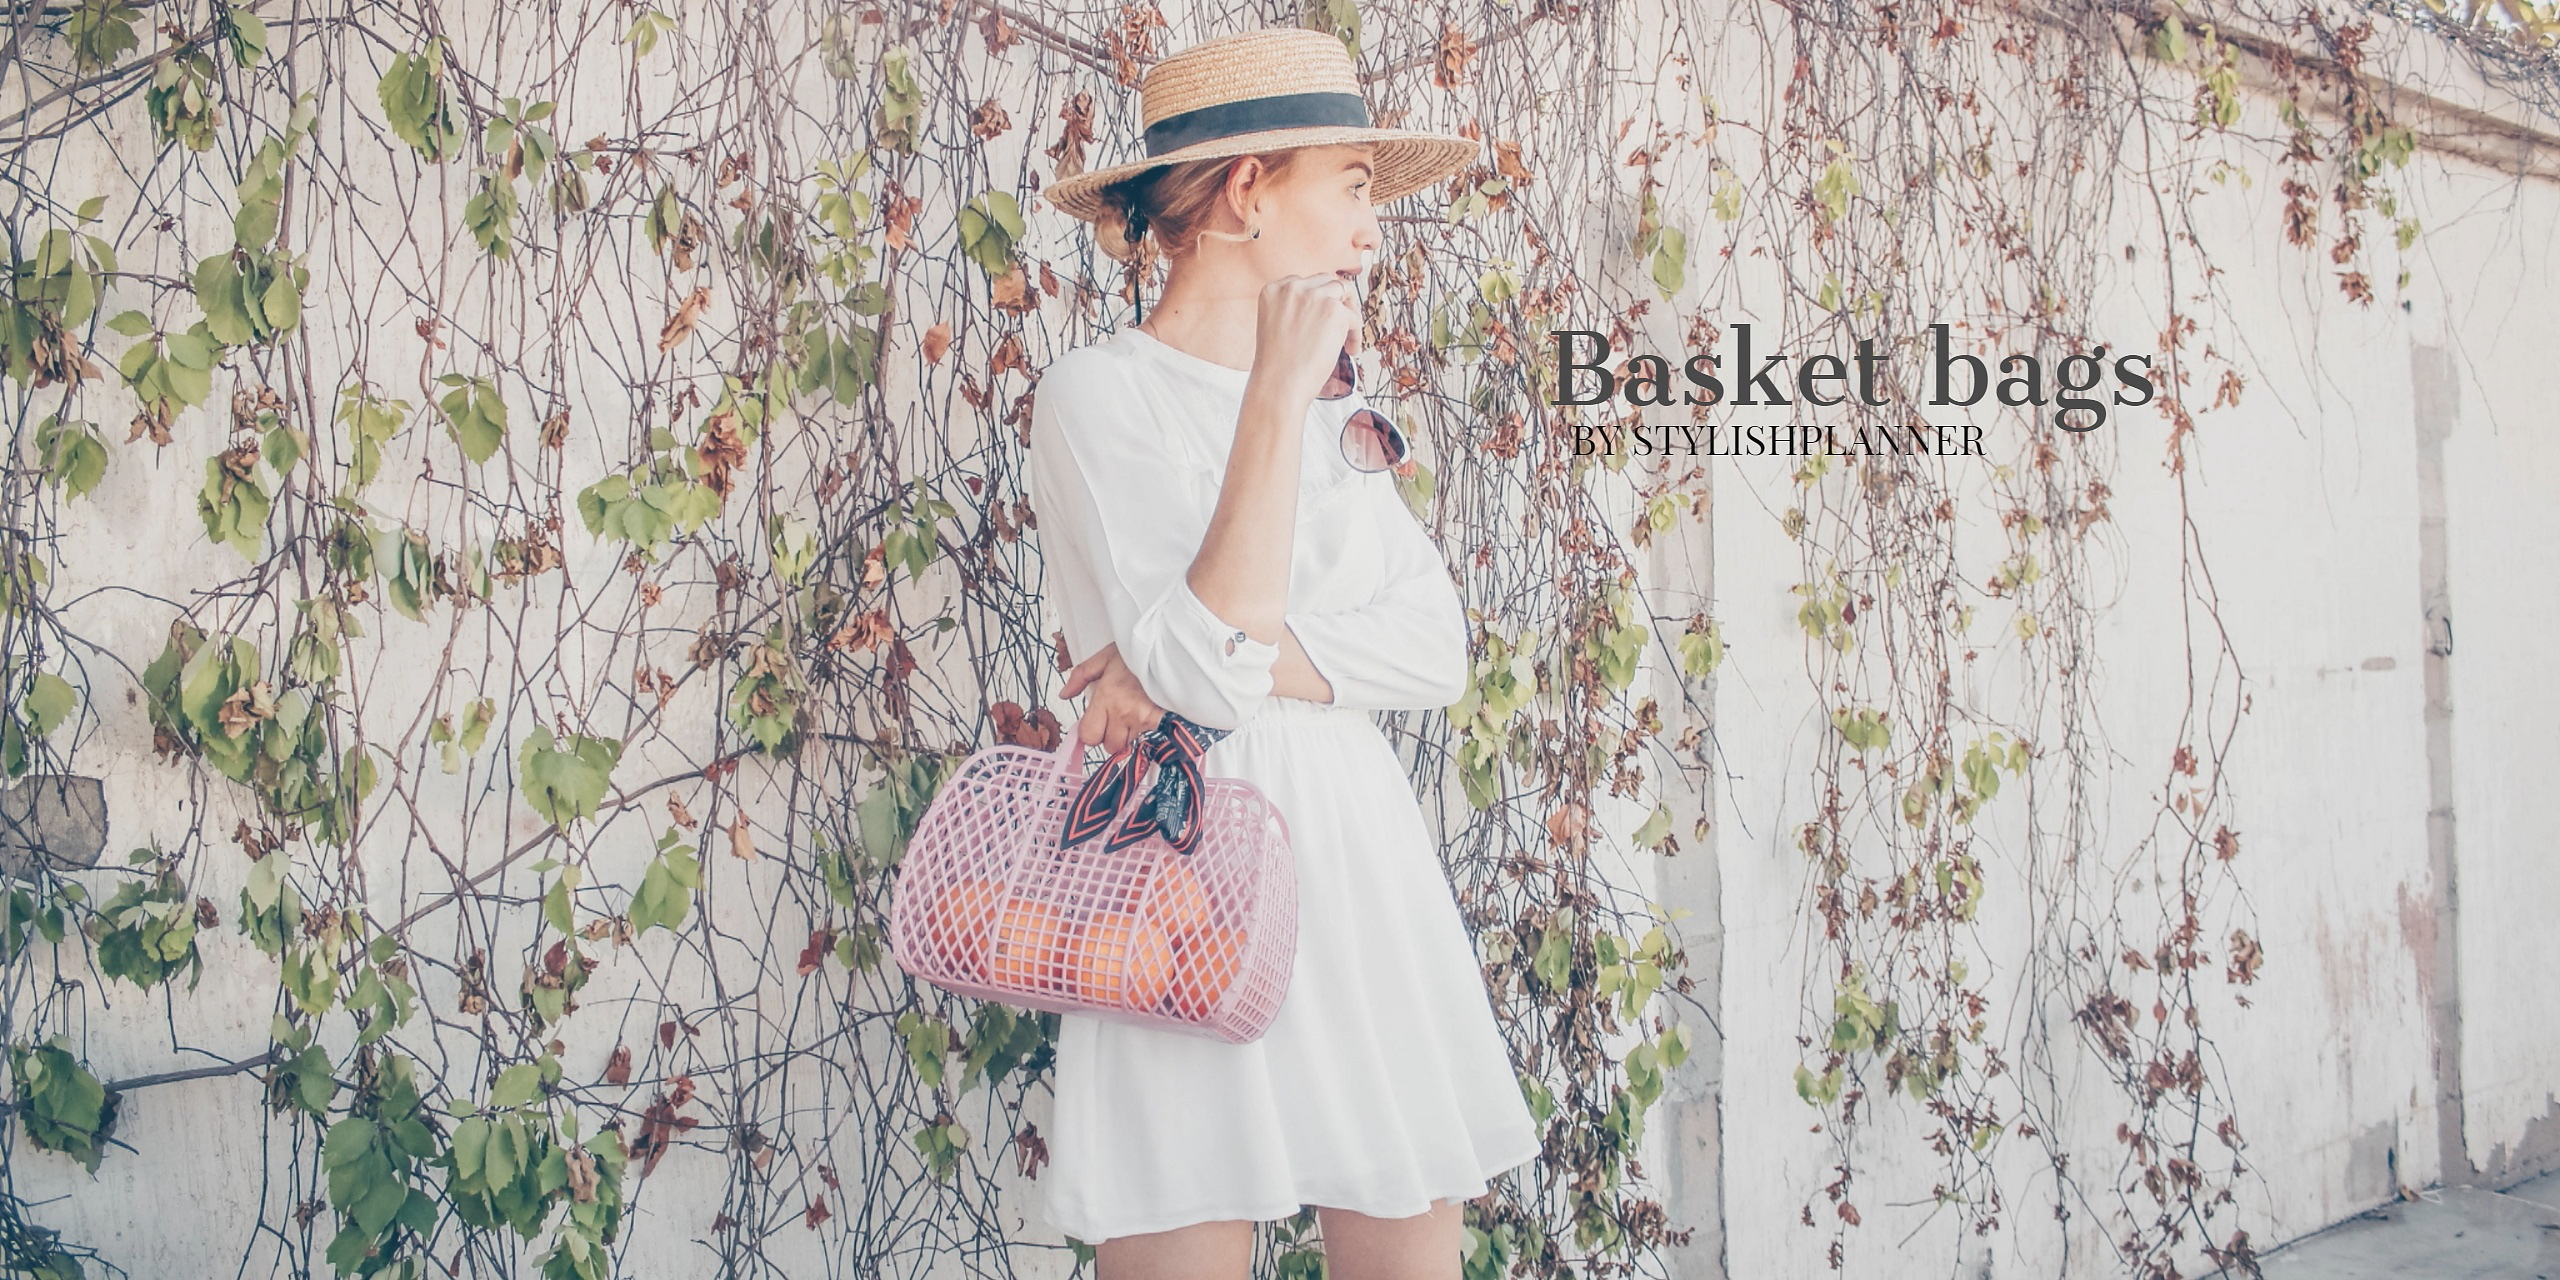 The basket bags